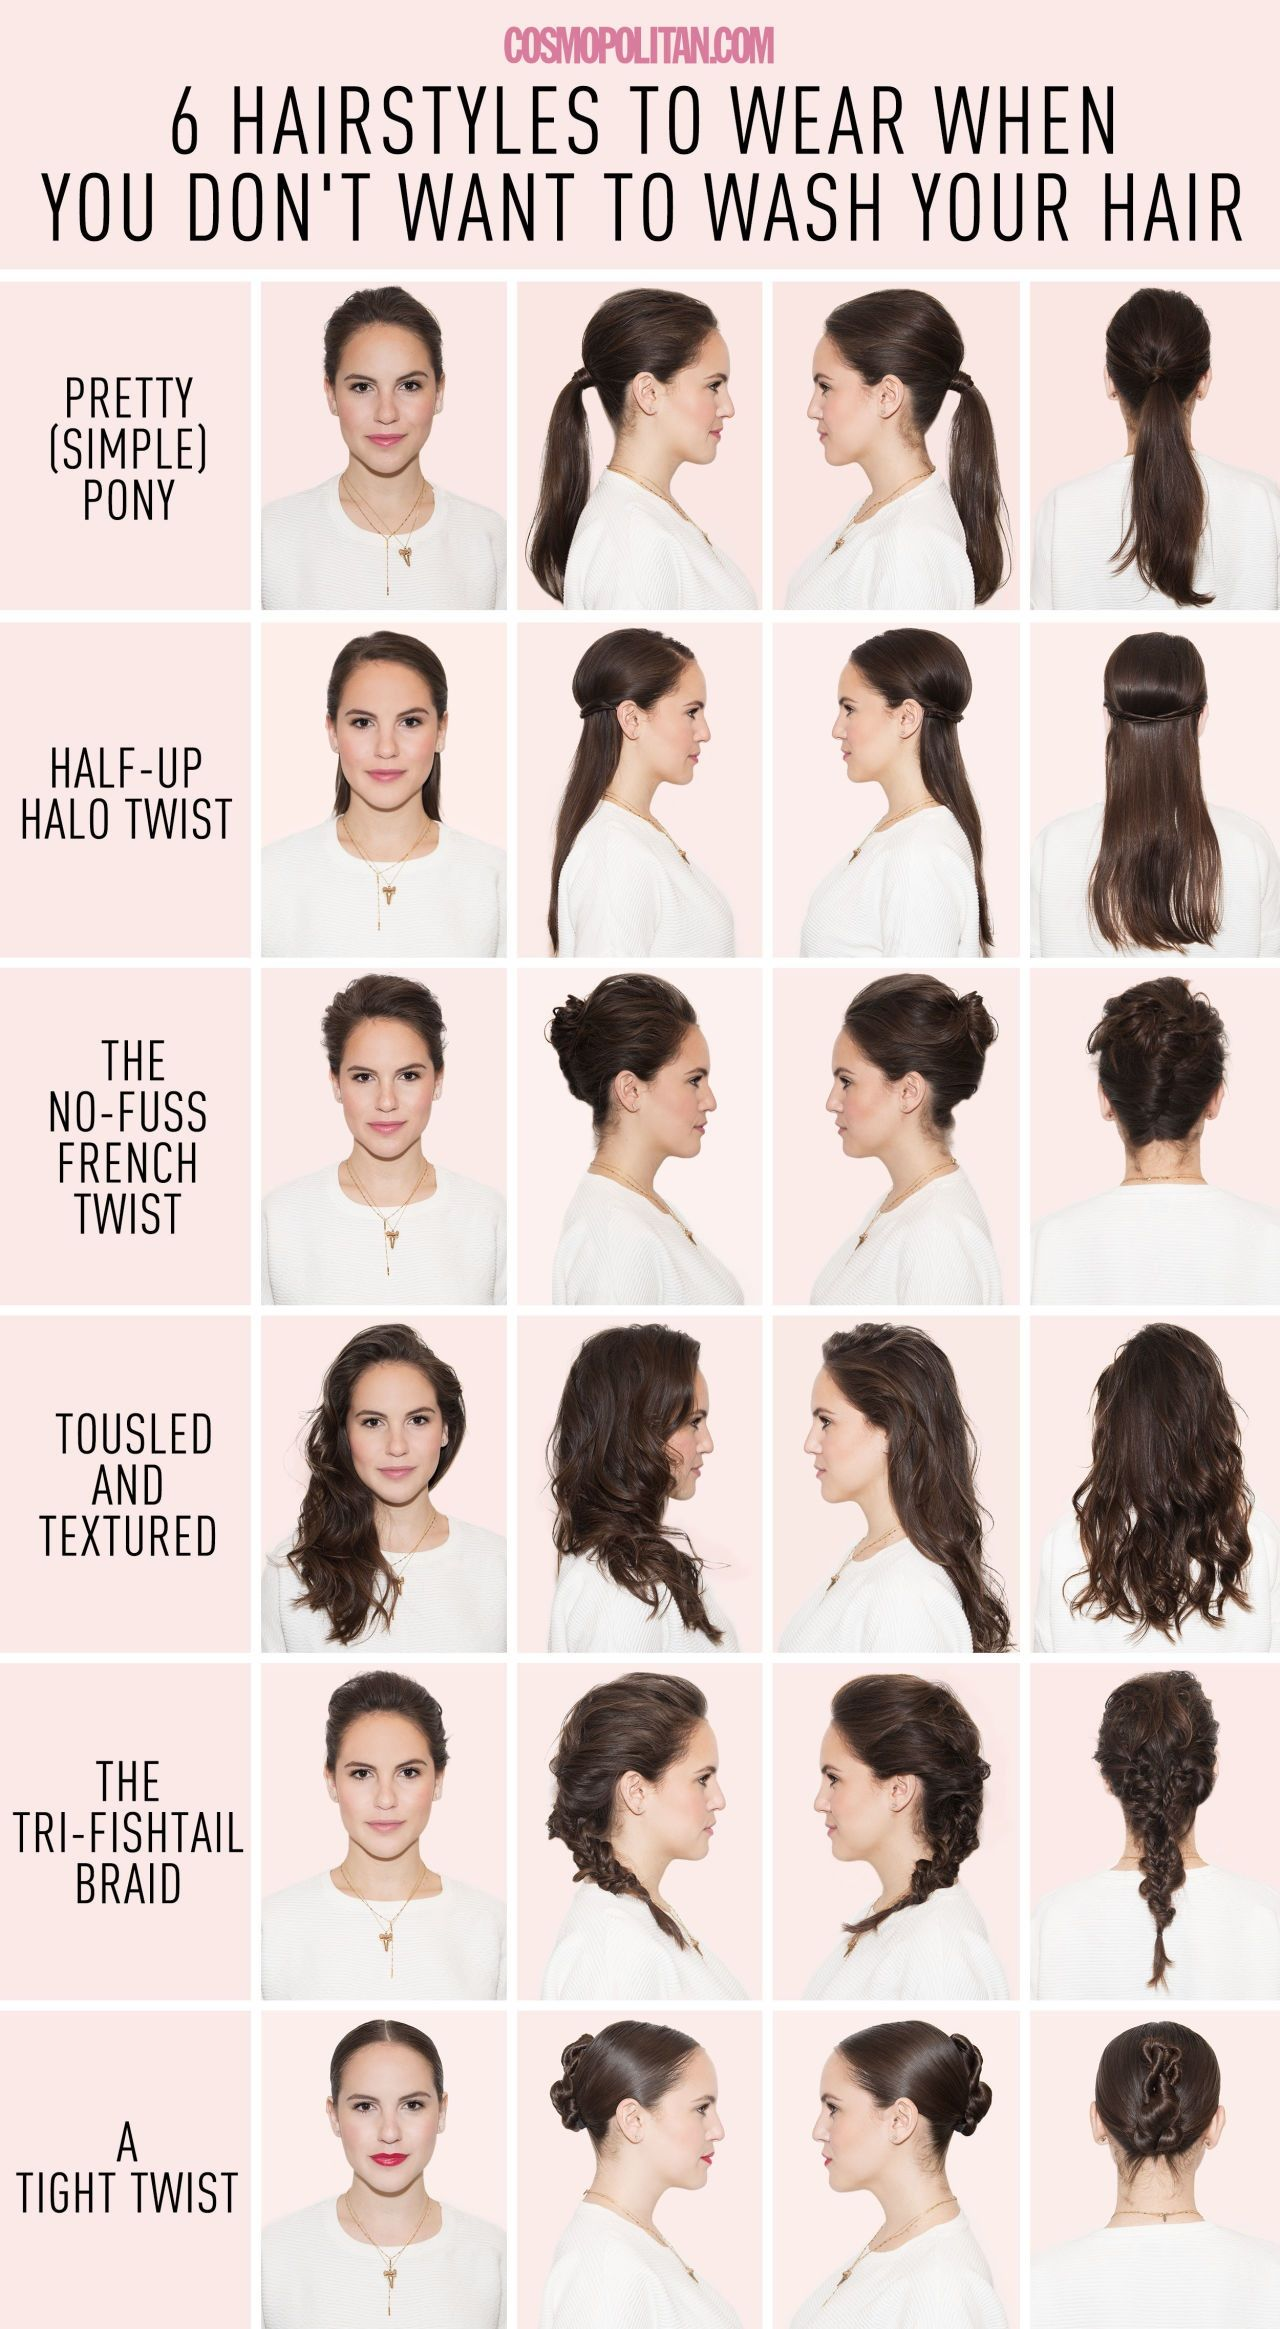 hairstyles that you can do if you have not washed your hair